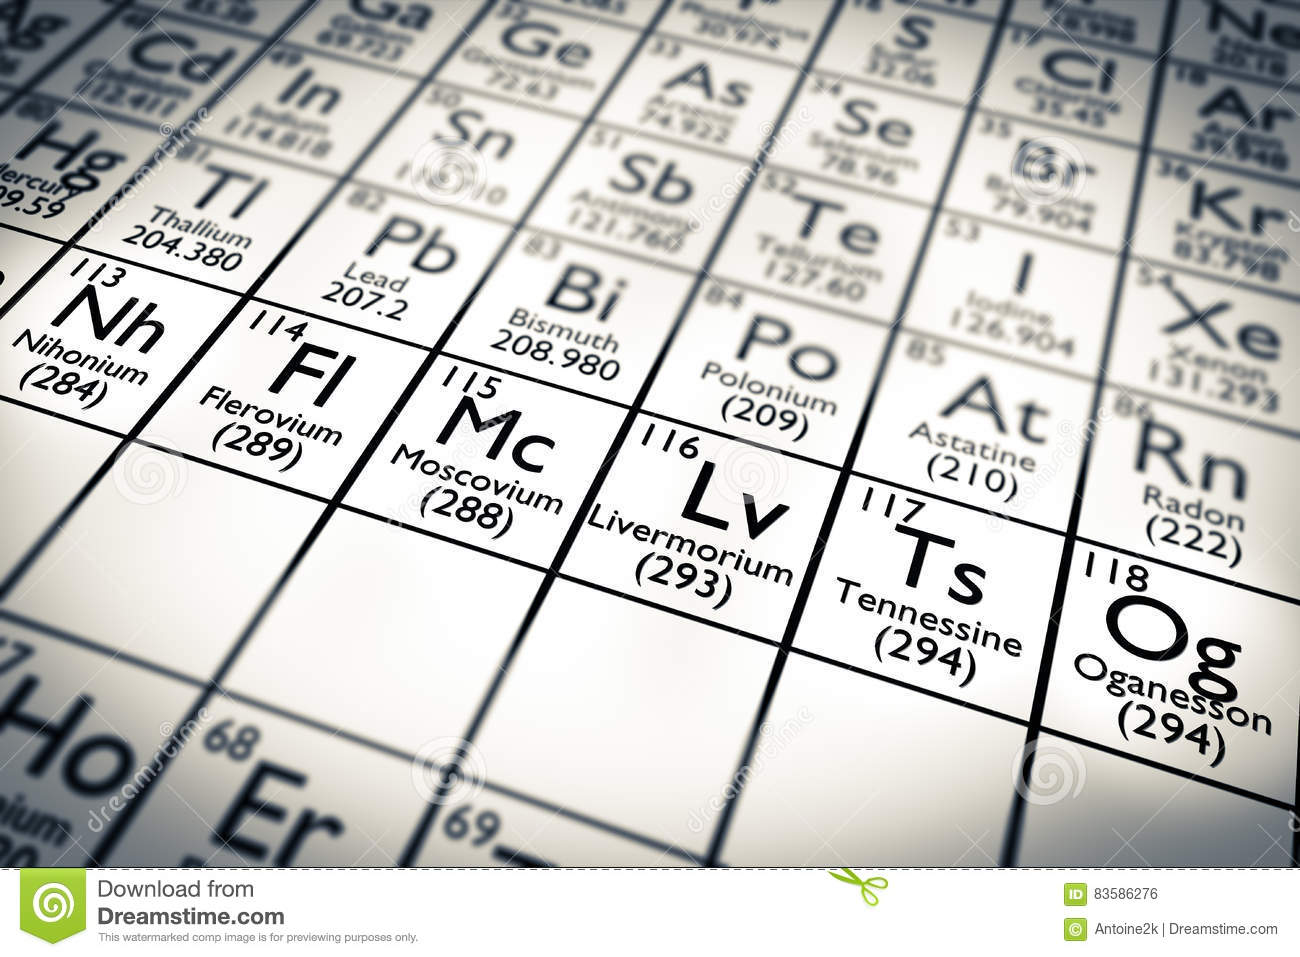 3d illustration nihonium 113 moscovium 115 tennessine 115 and royalty free illustration gamestrikefo Image collections